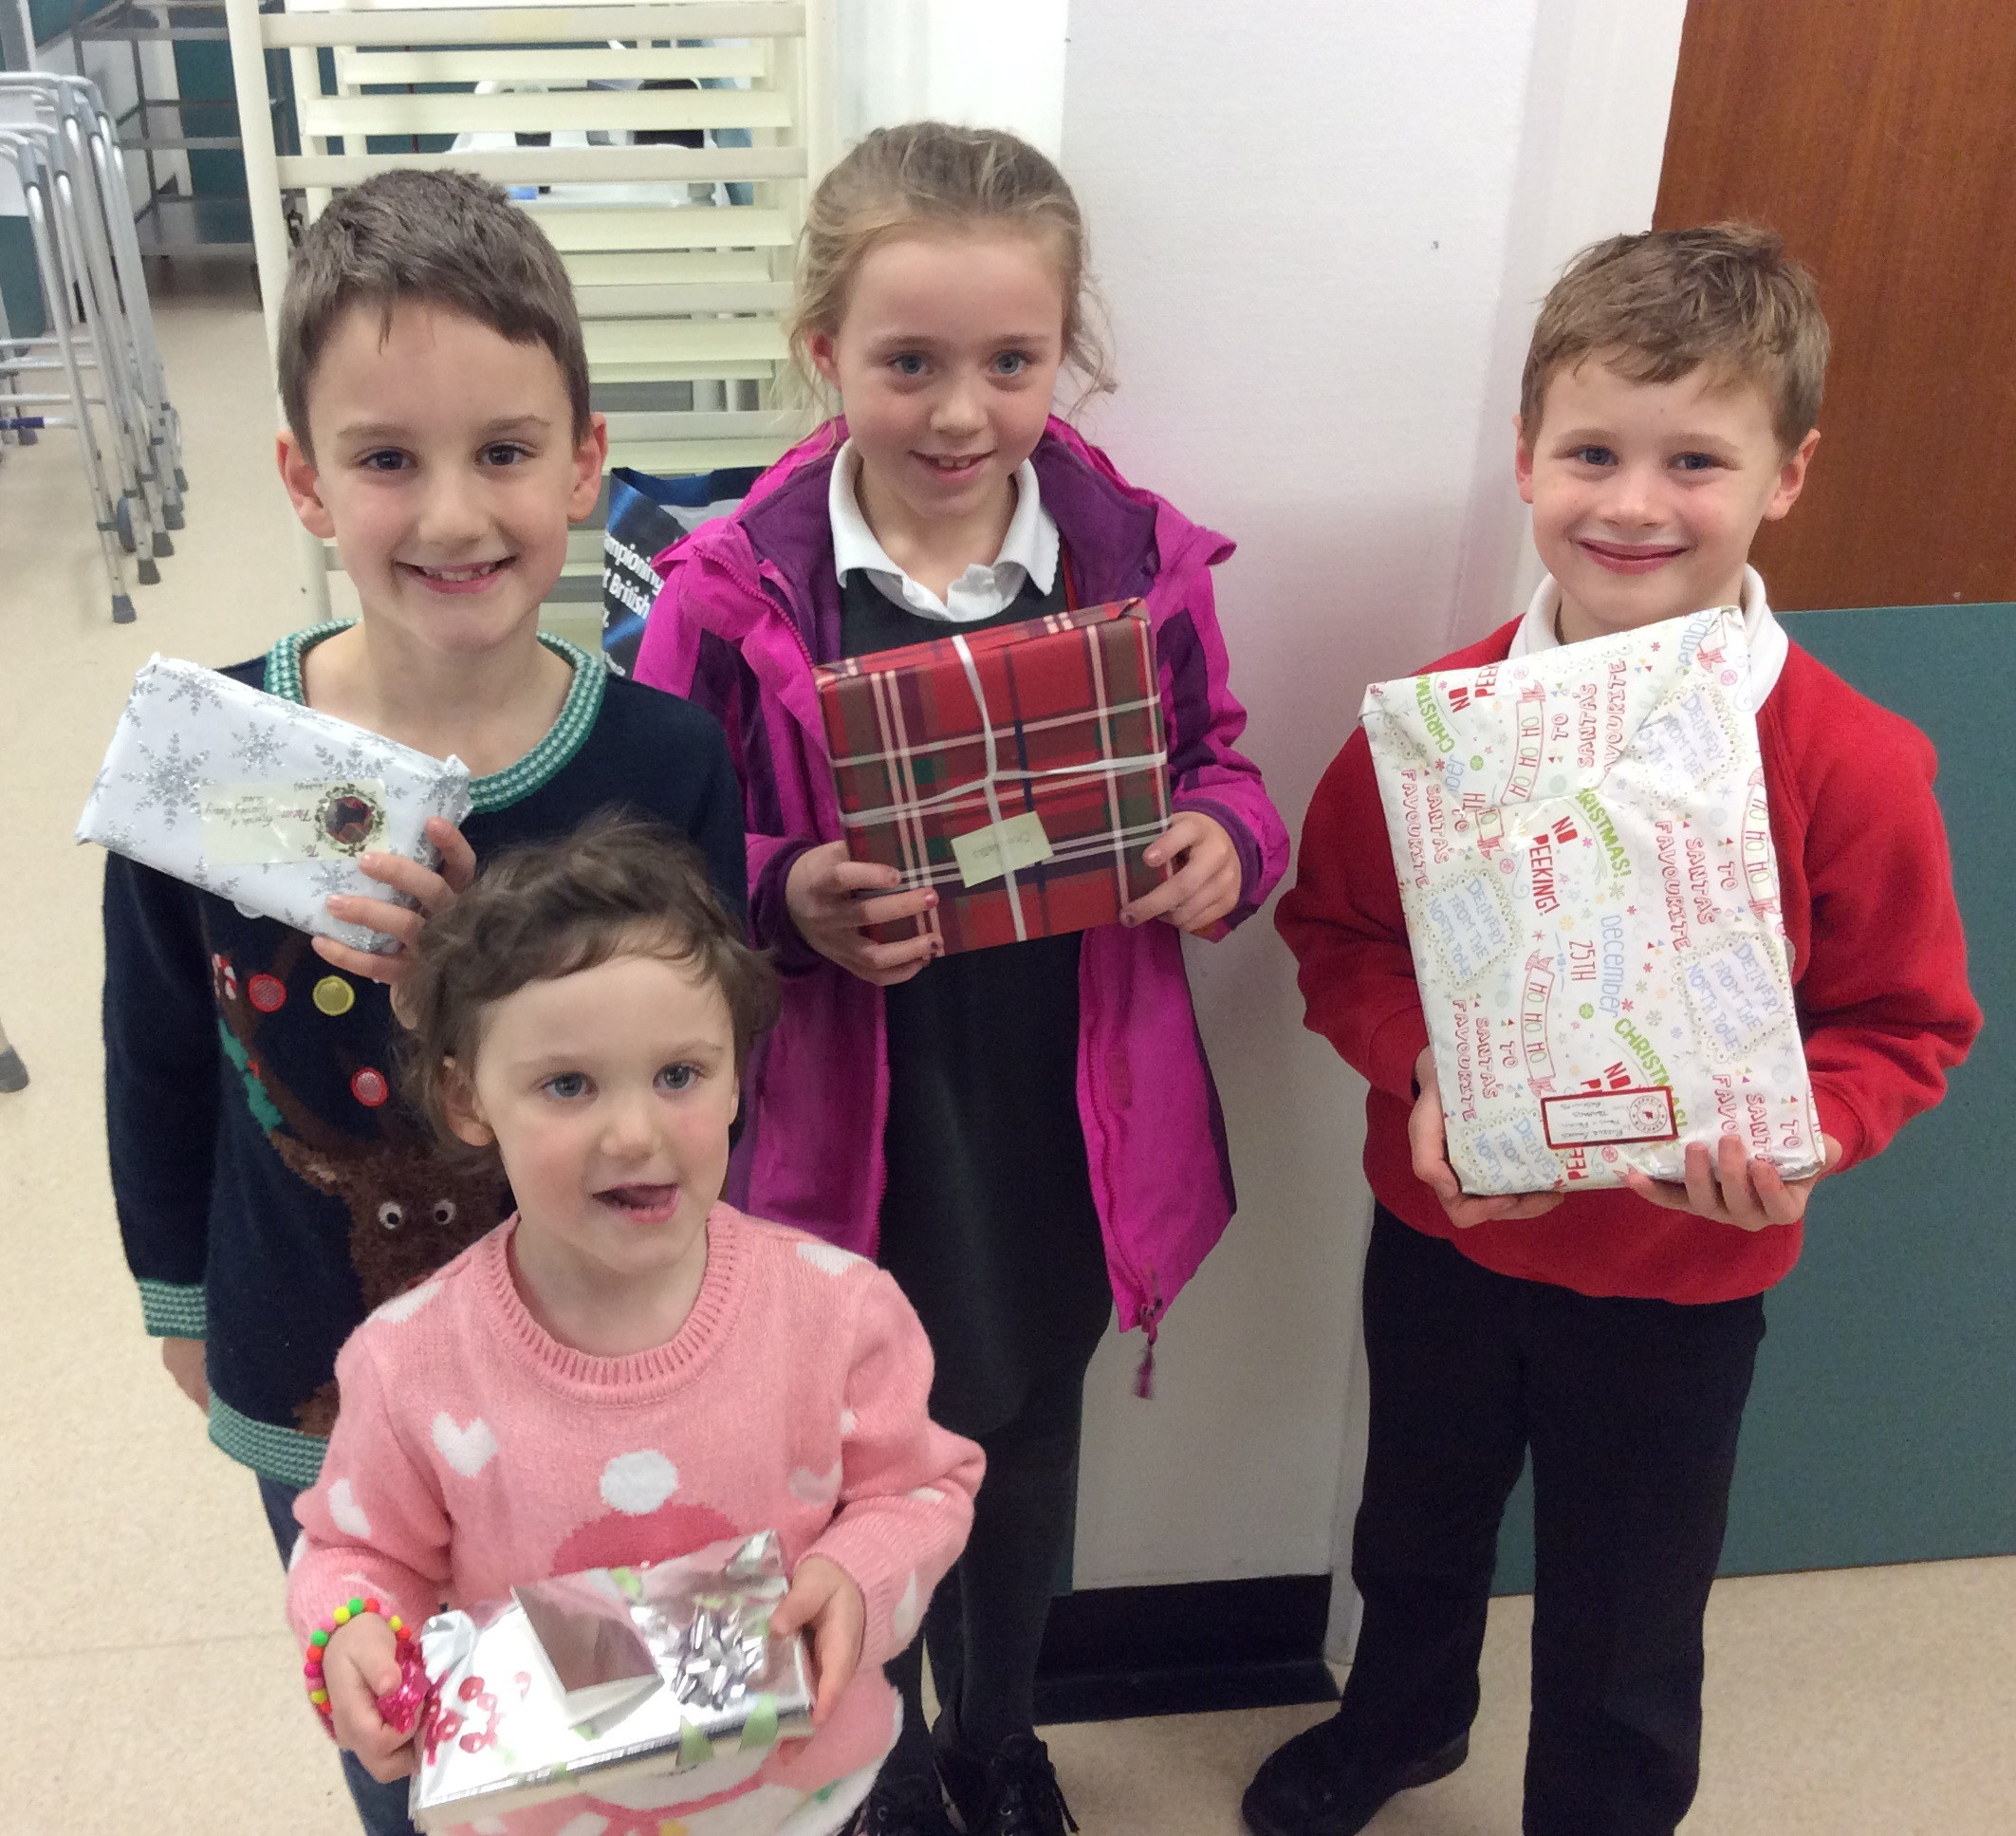 Cononley Primary School pupils Charlie and Georgia Rowe, Jorja-Lou Scarr and Alexander Duffey with some of the gifts